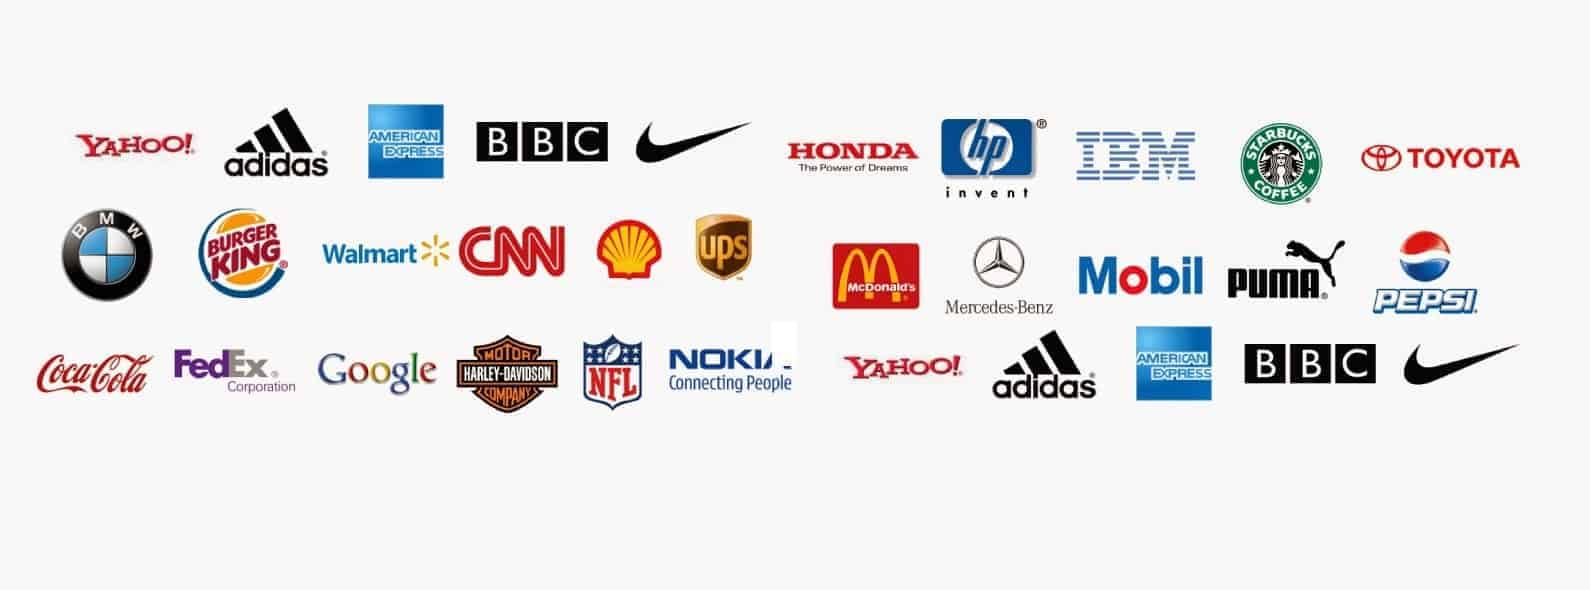 Famous brand logos